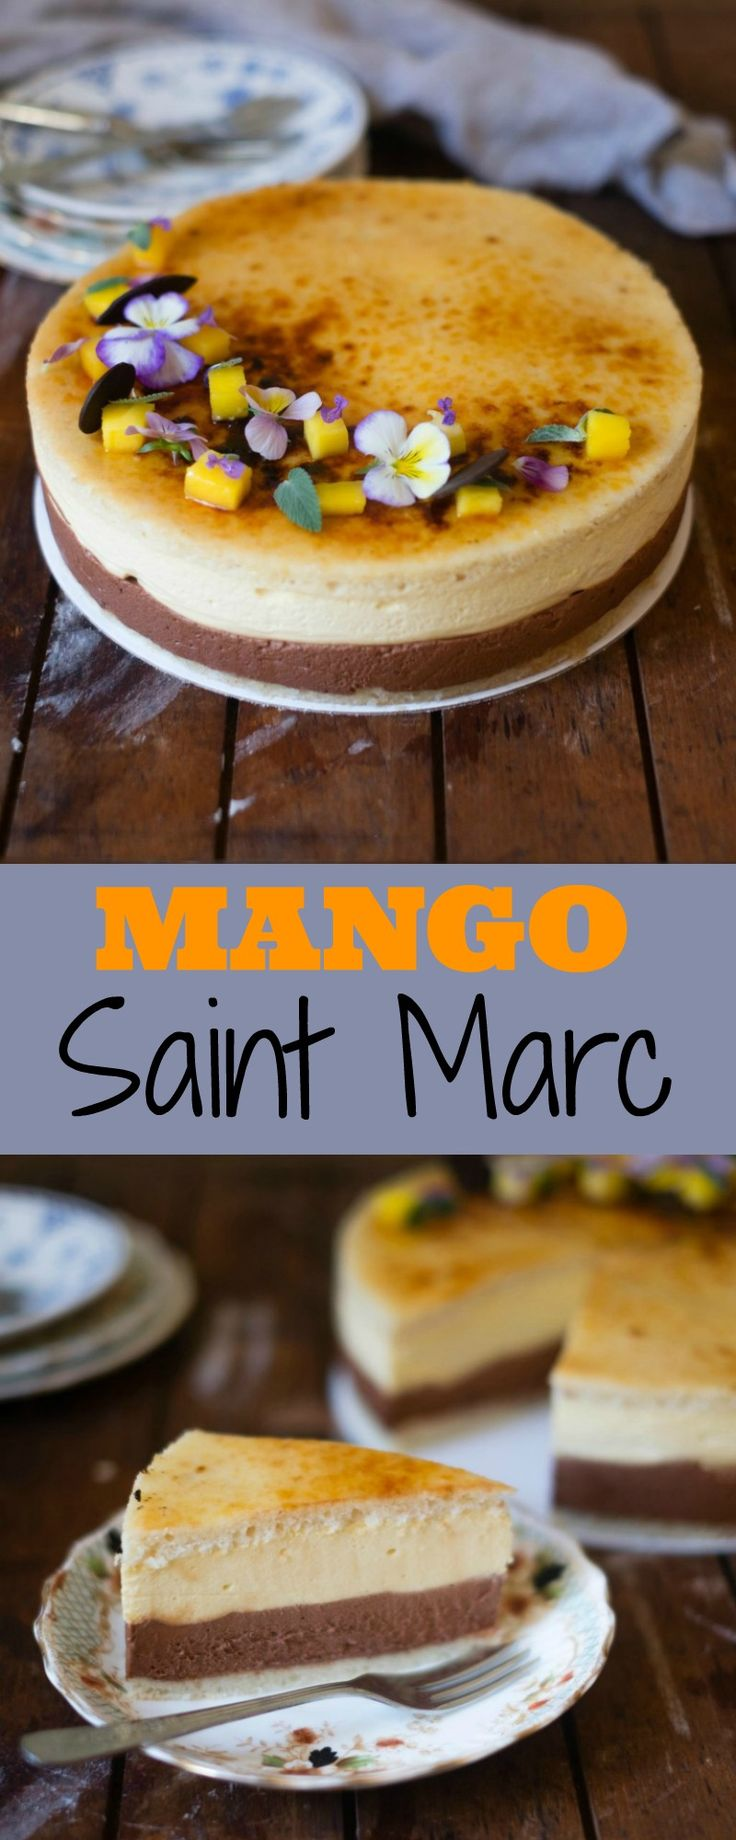 A Mango Saint Marc is a delicious layered dessert of mango bavaroise and chocolate mousse sandwiched between two slices of joconde.